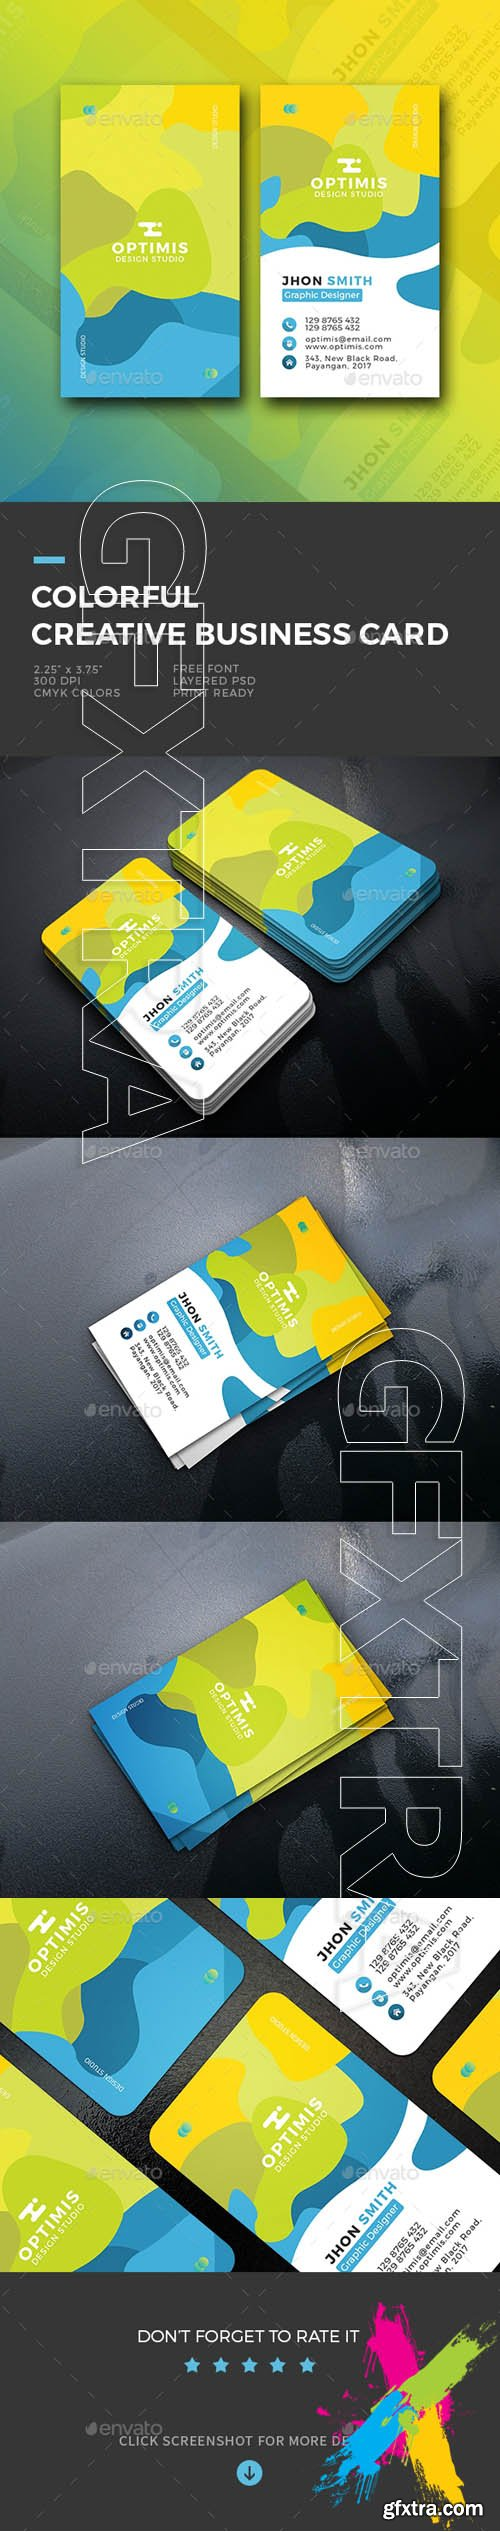 Gr colorful creative business card 20121184 gfxtra pinterest find this pin and more on gfxtra buy colorful creative business card reheart Images